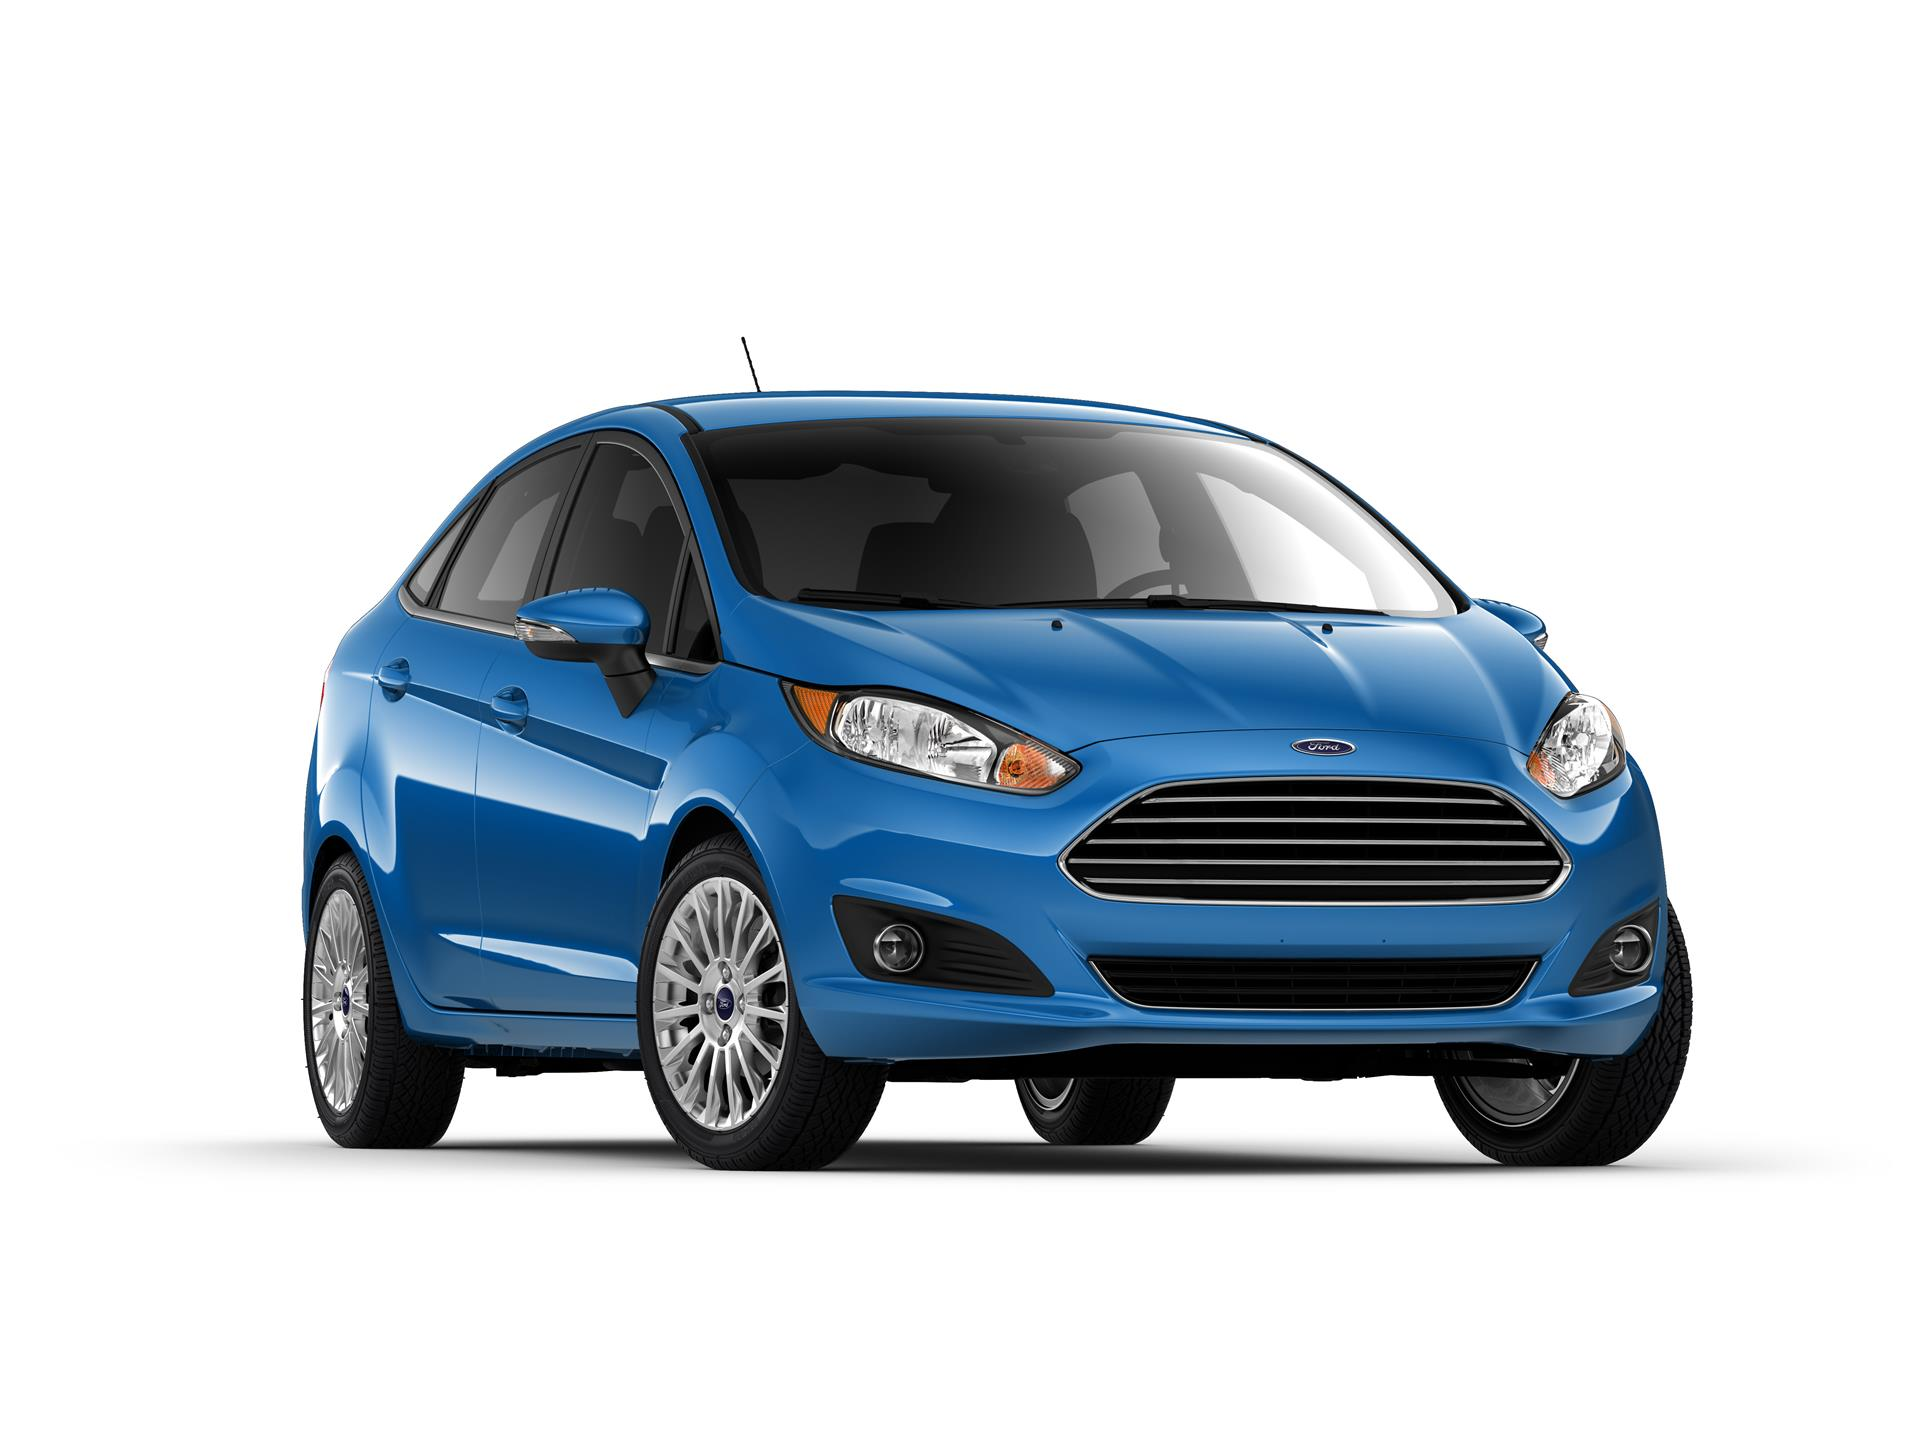 2015 ford fiesta technical specifications and data engine dimensions and mechanical details. Black Bedroom Furniture Sets. Home Design Ideas